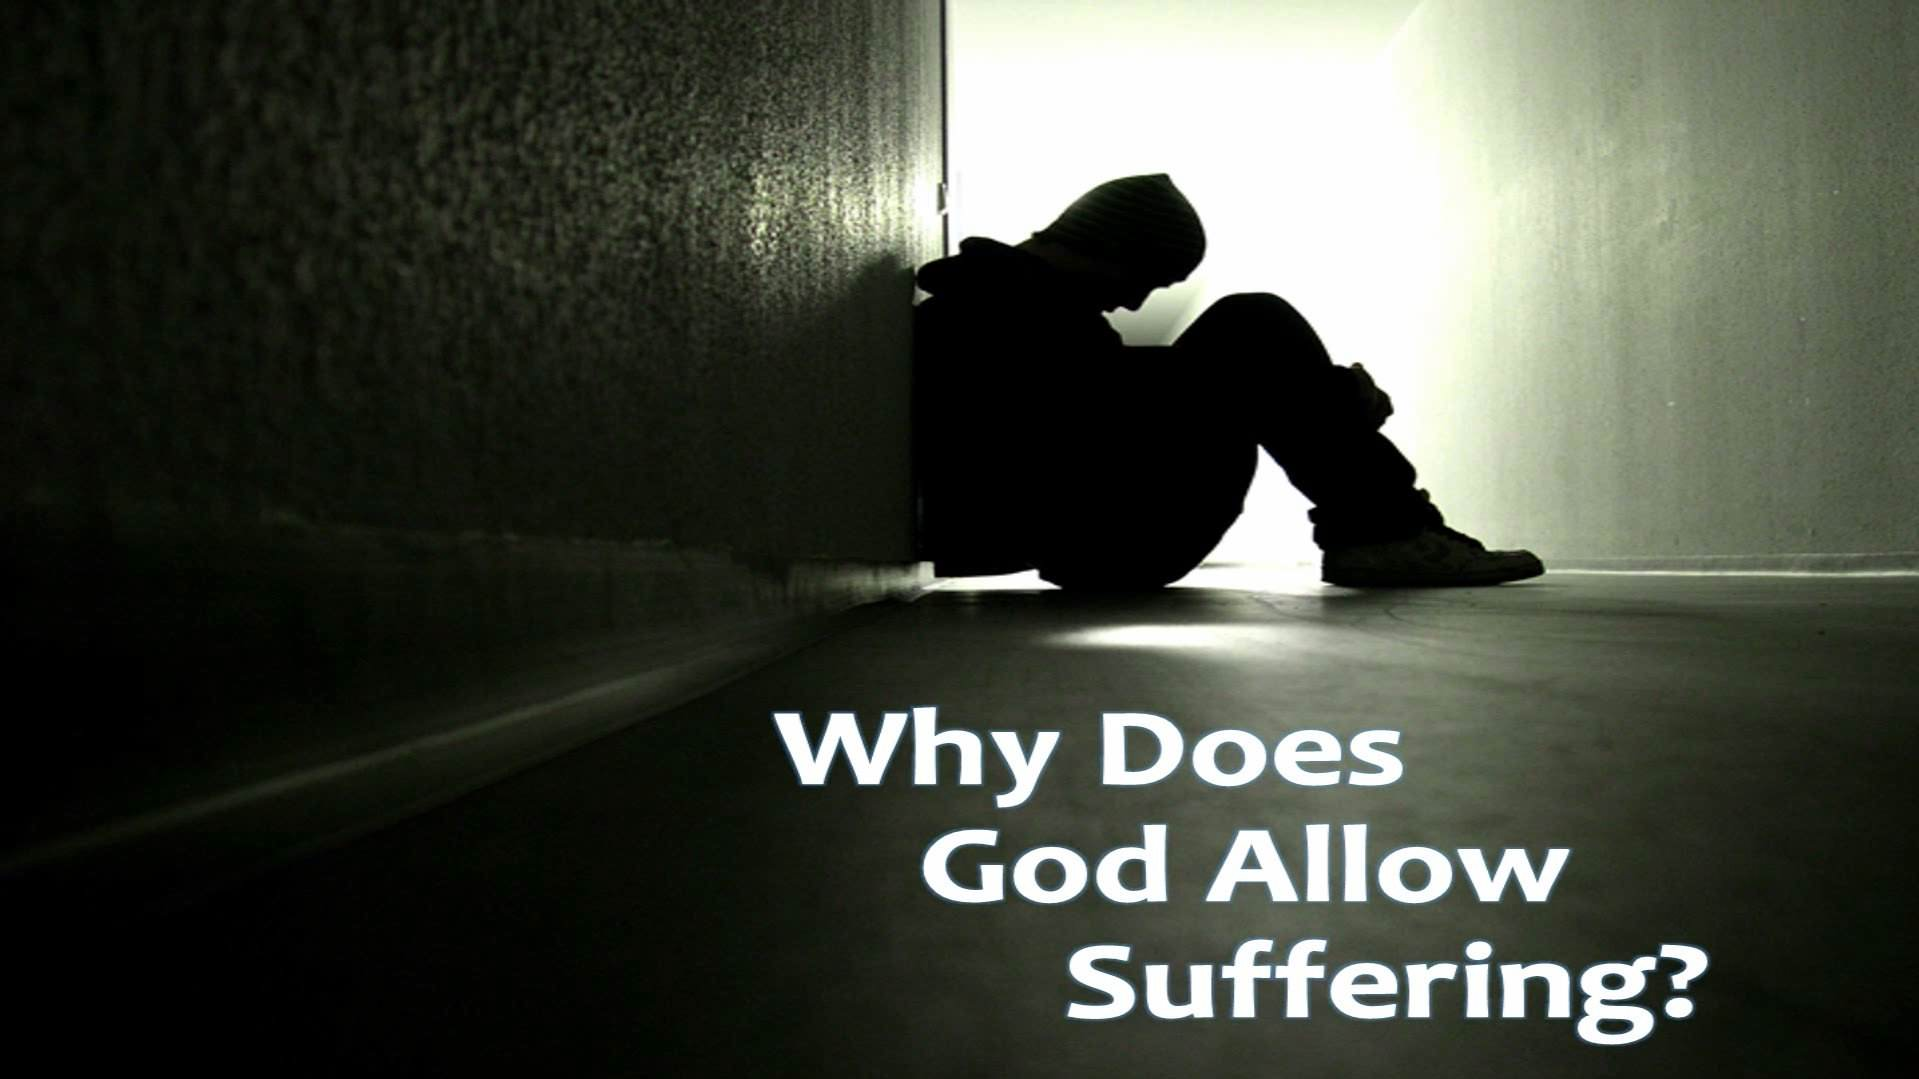 Why Does God Allow Suffering?